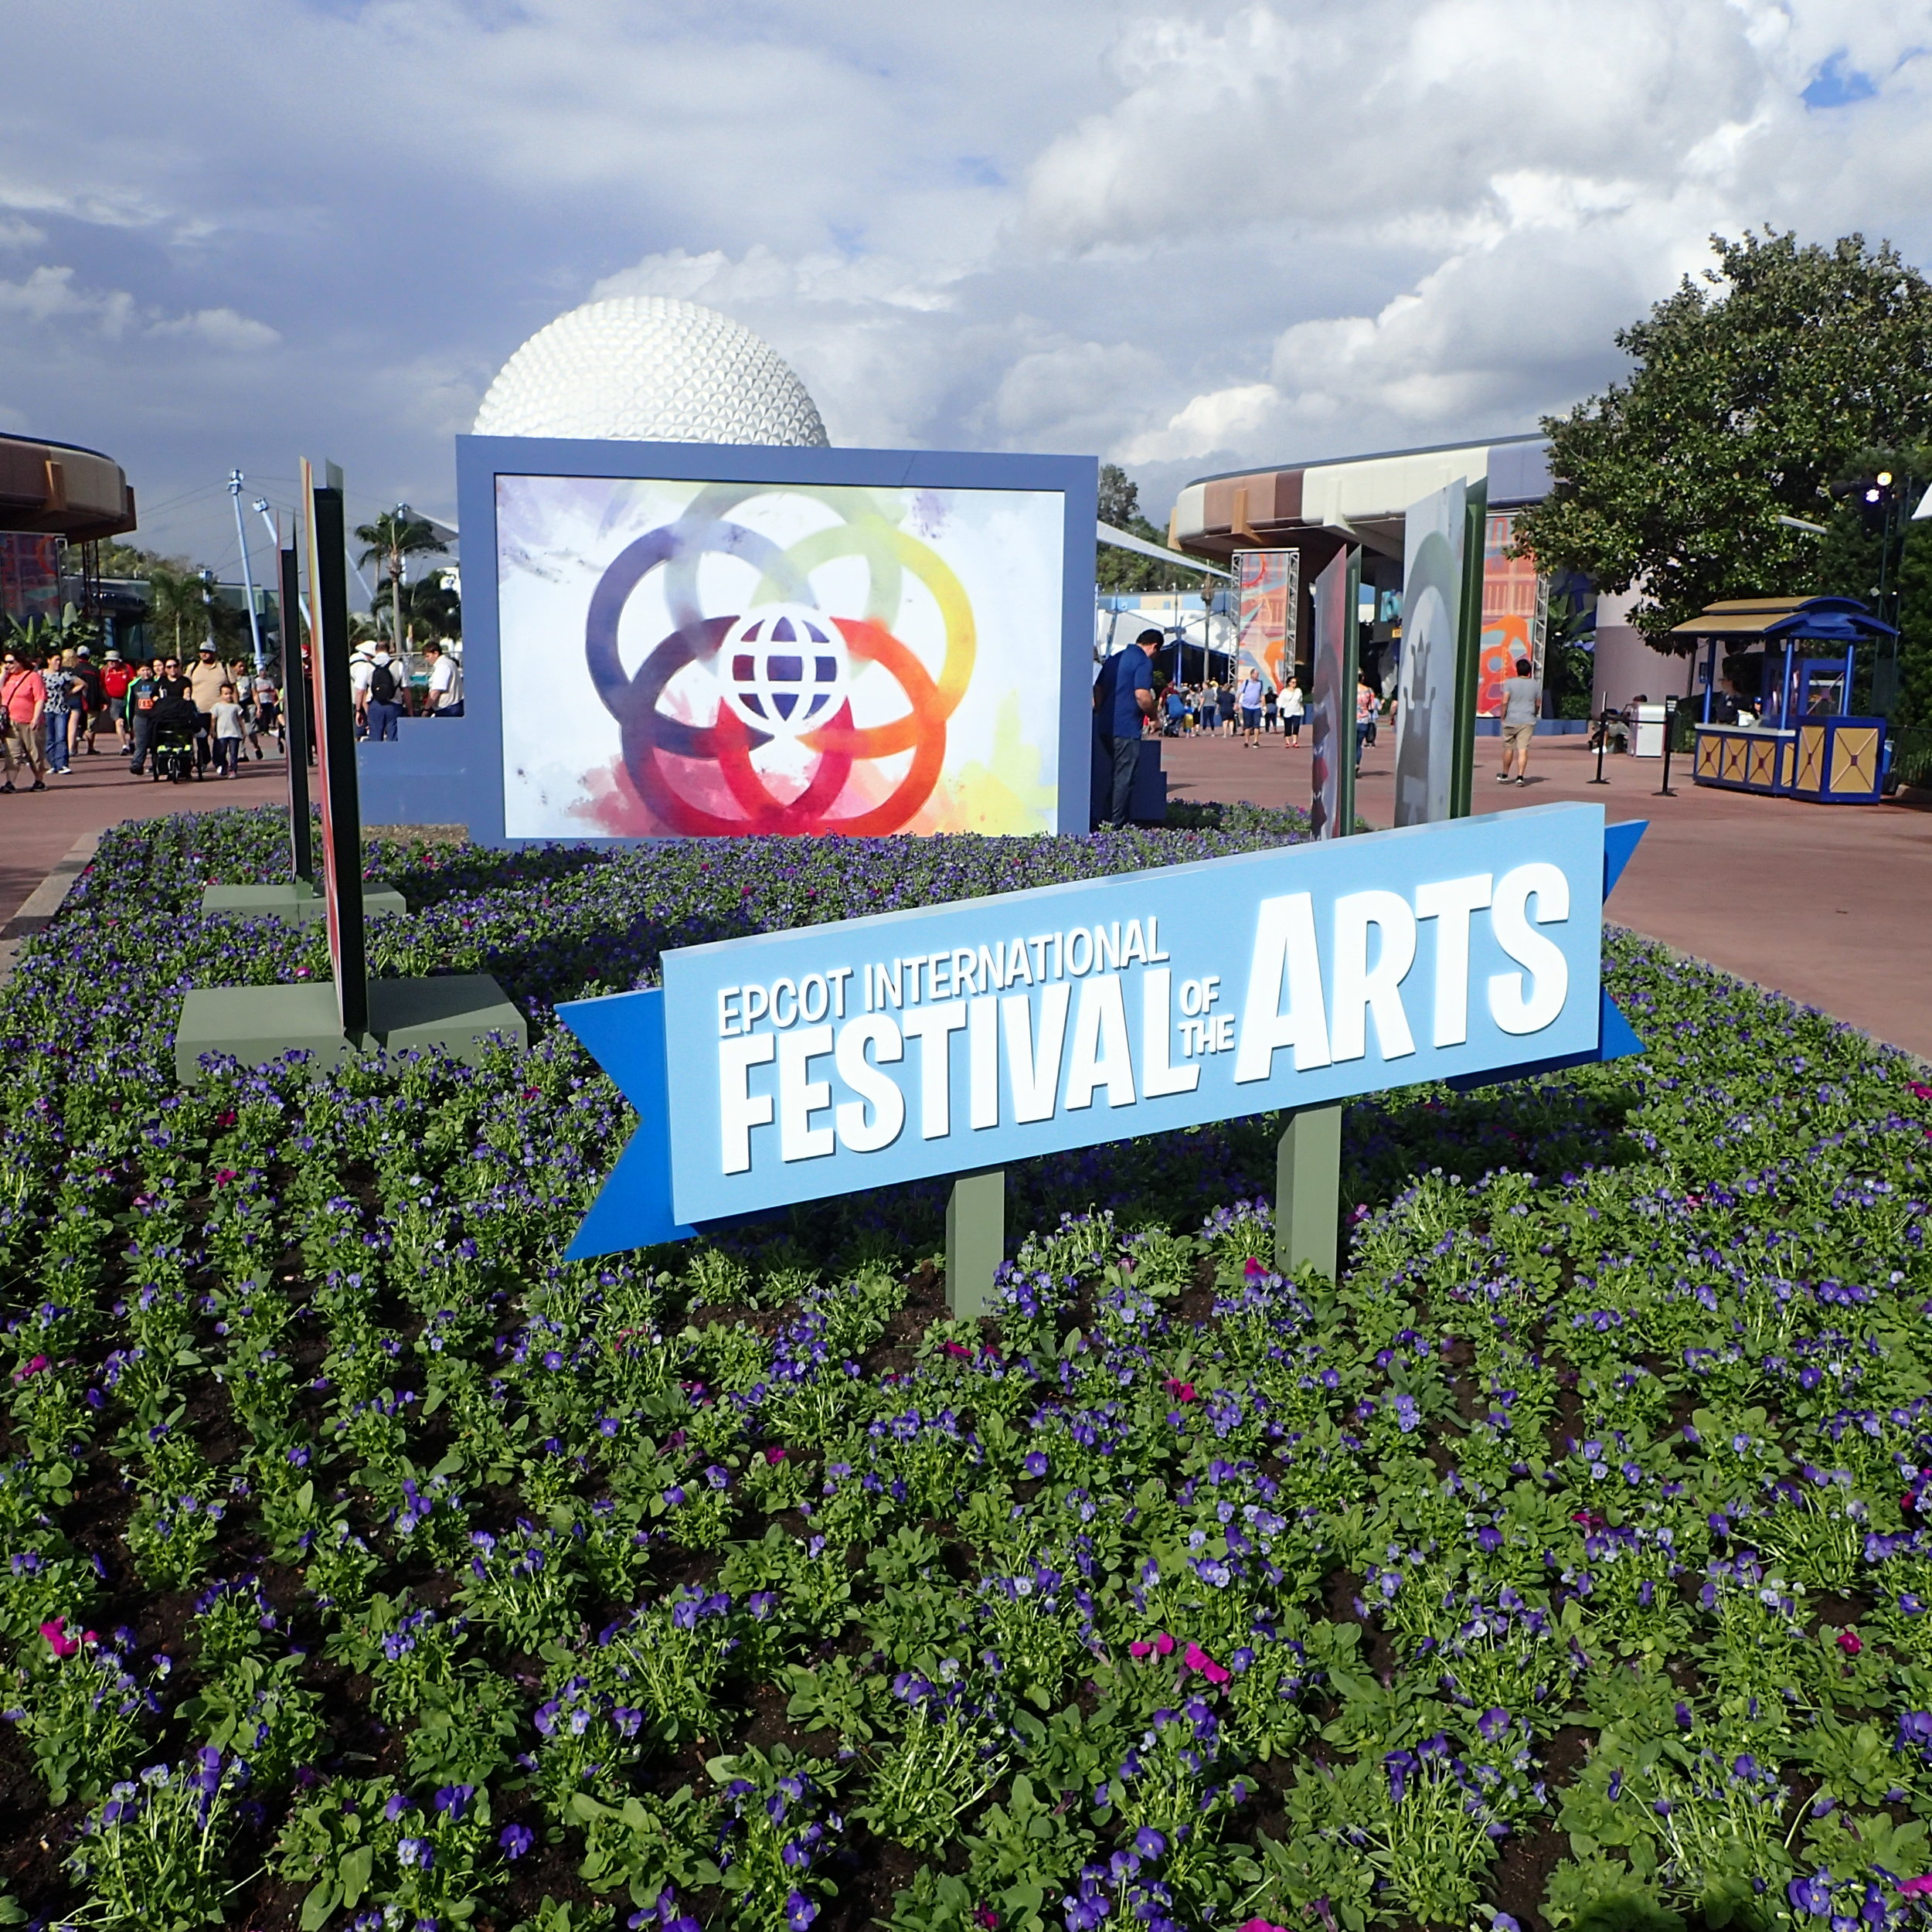 Magic Water, Living Statues, Pork Roulade – 7 Highlights at the Epcot Festival of the Arts 2018 signage